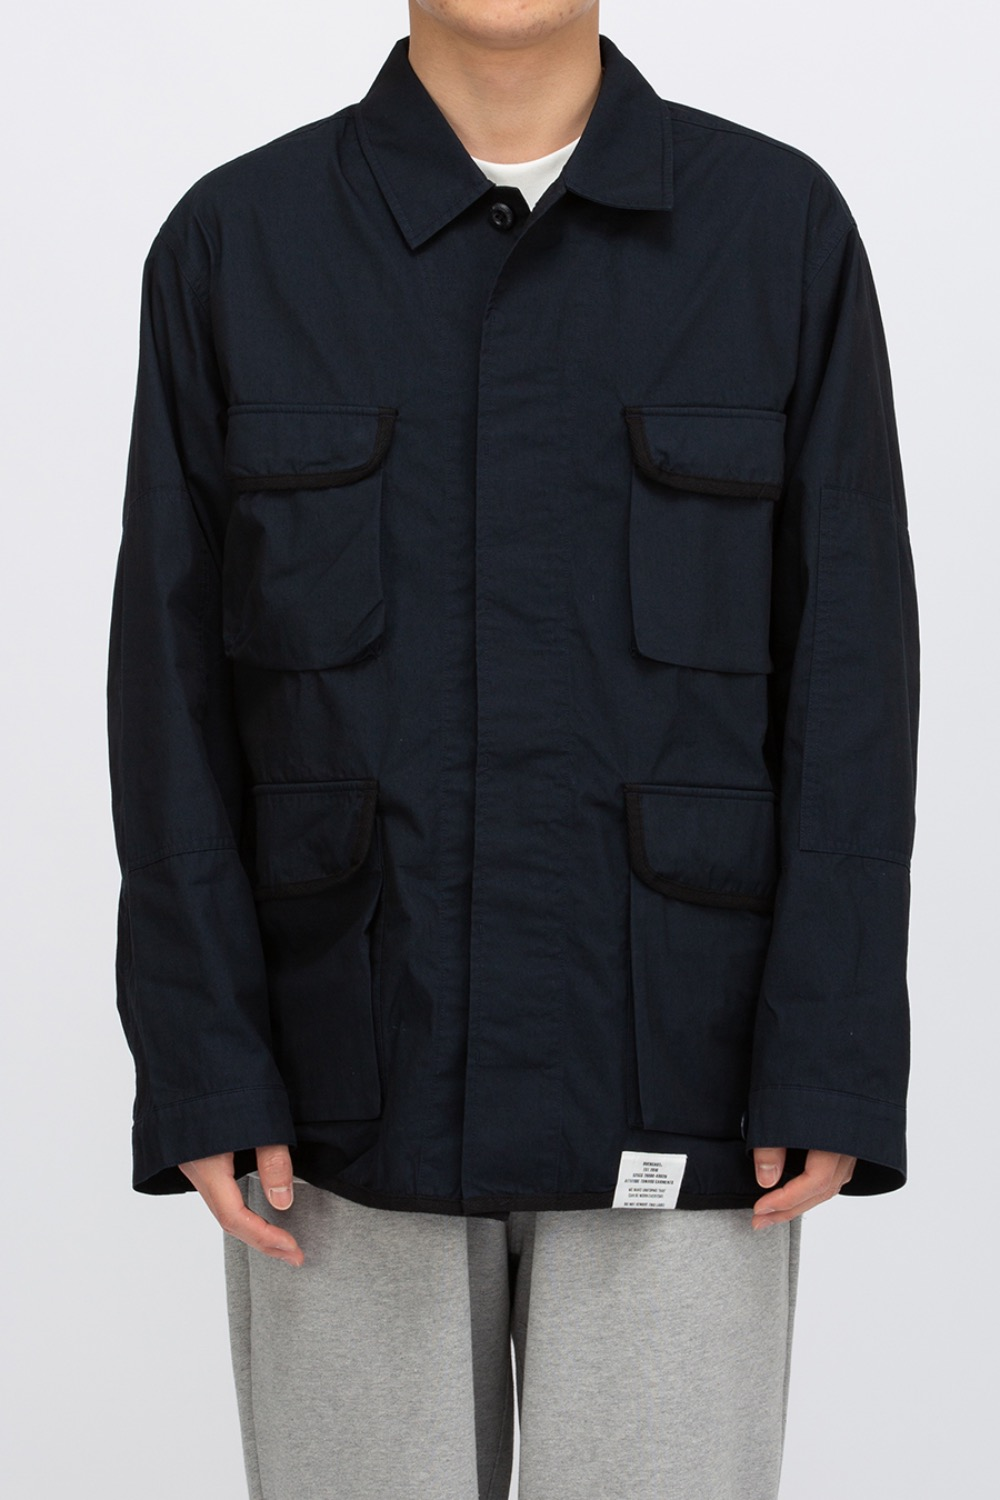 VALUE BDU JACKET NAVY